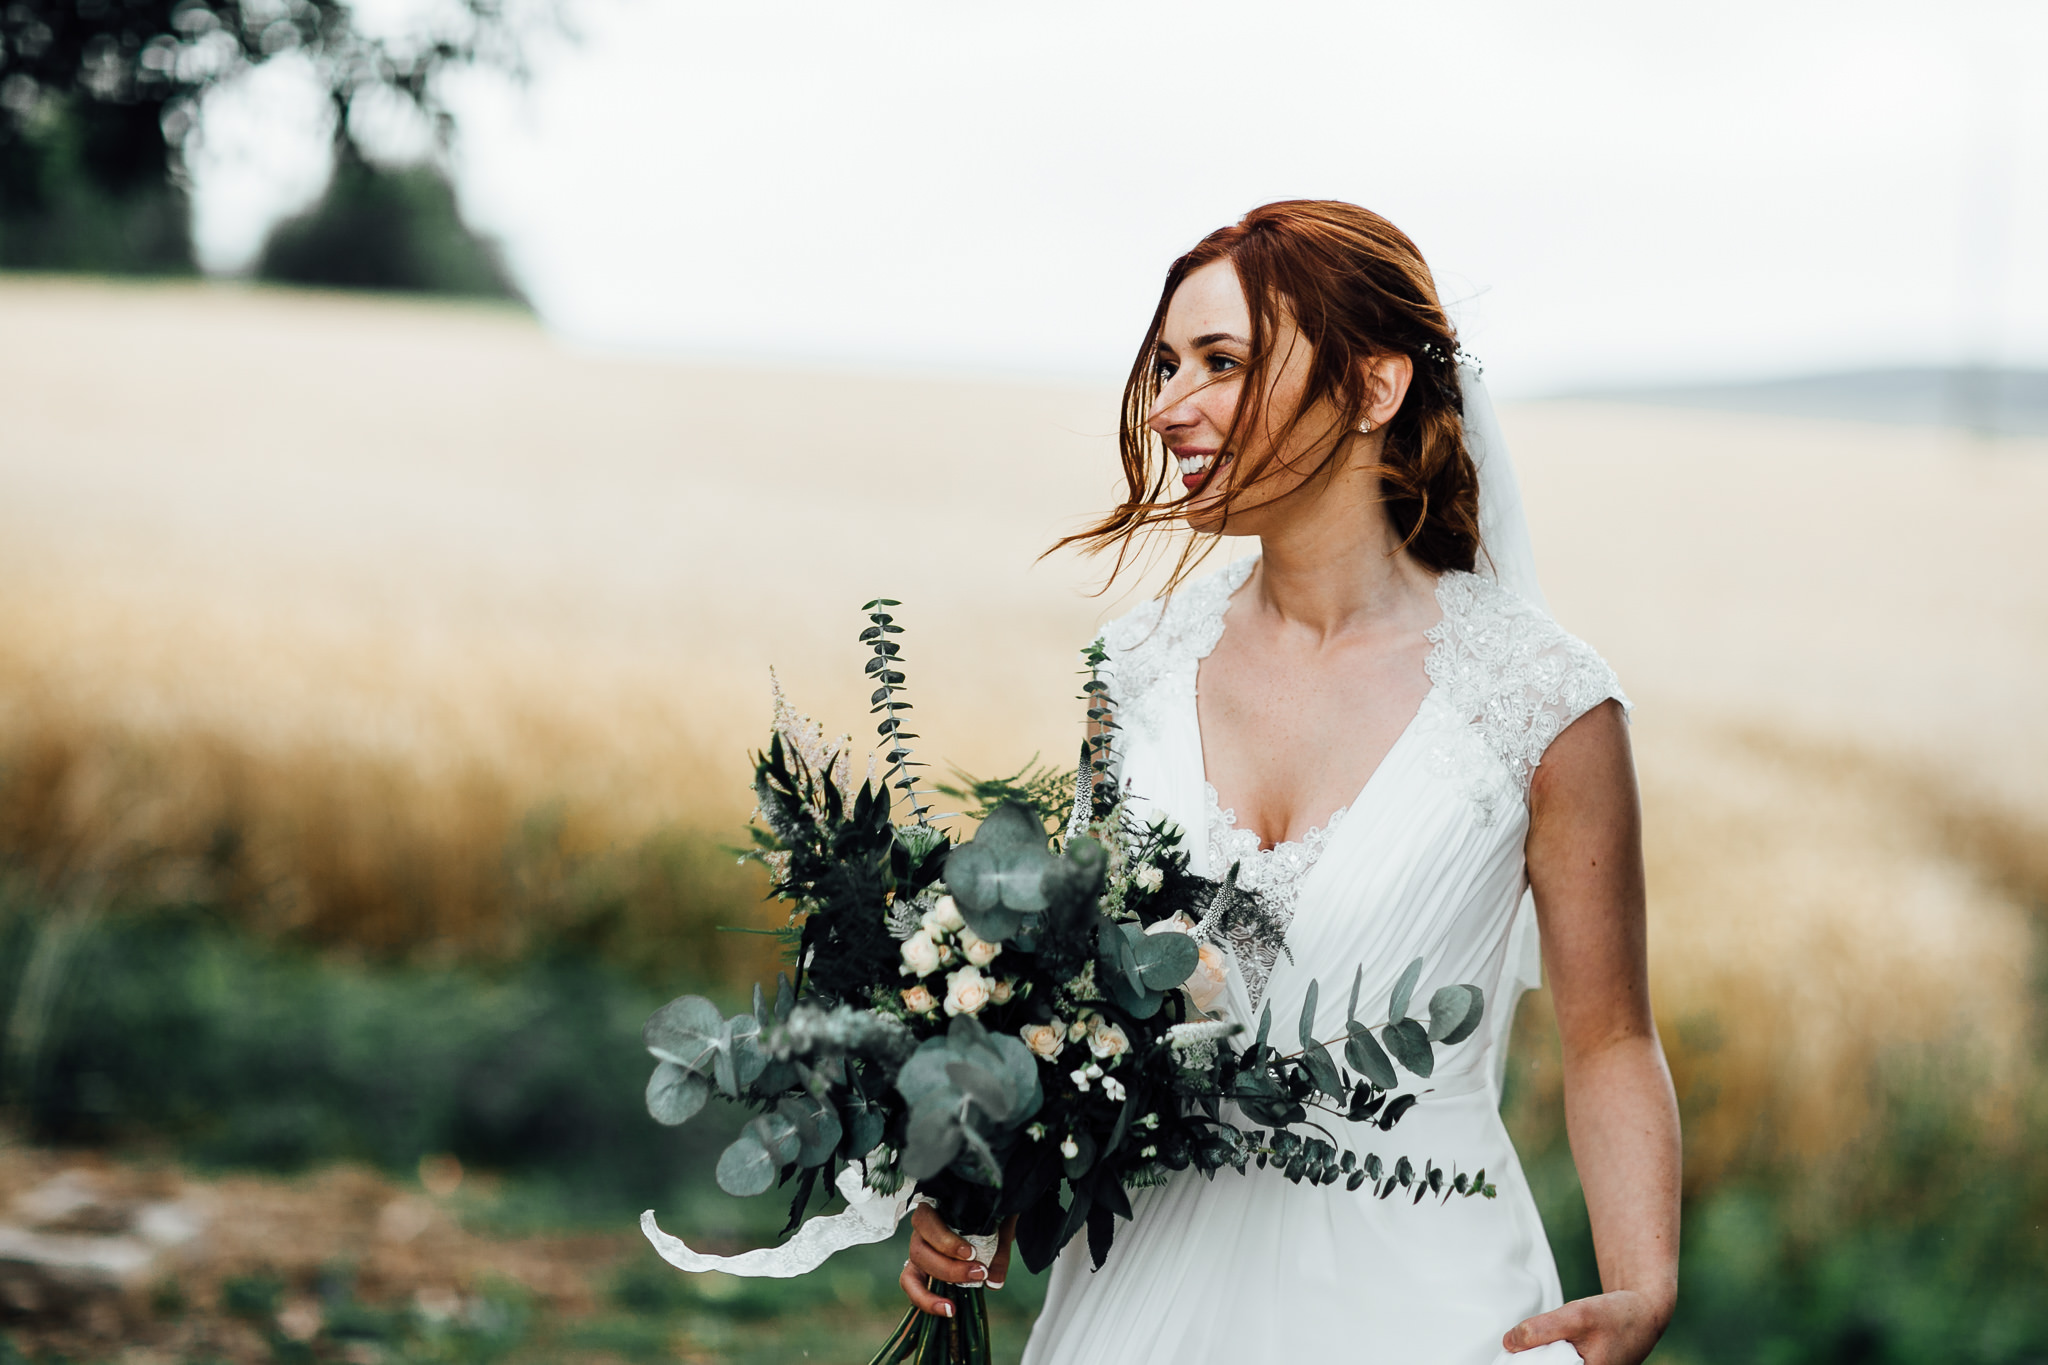 bride photos at a wheat field